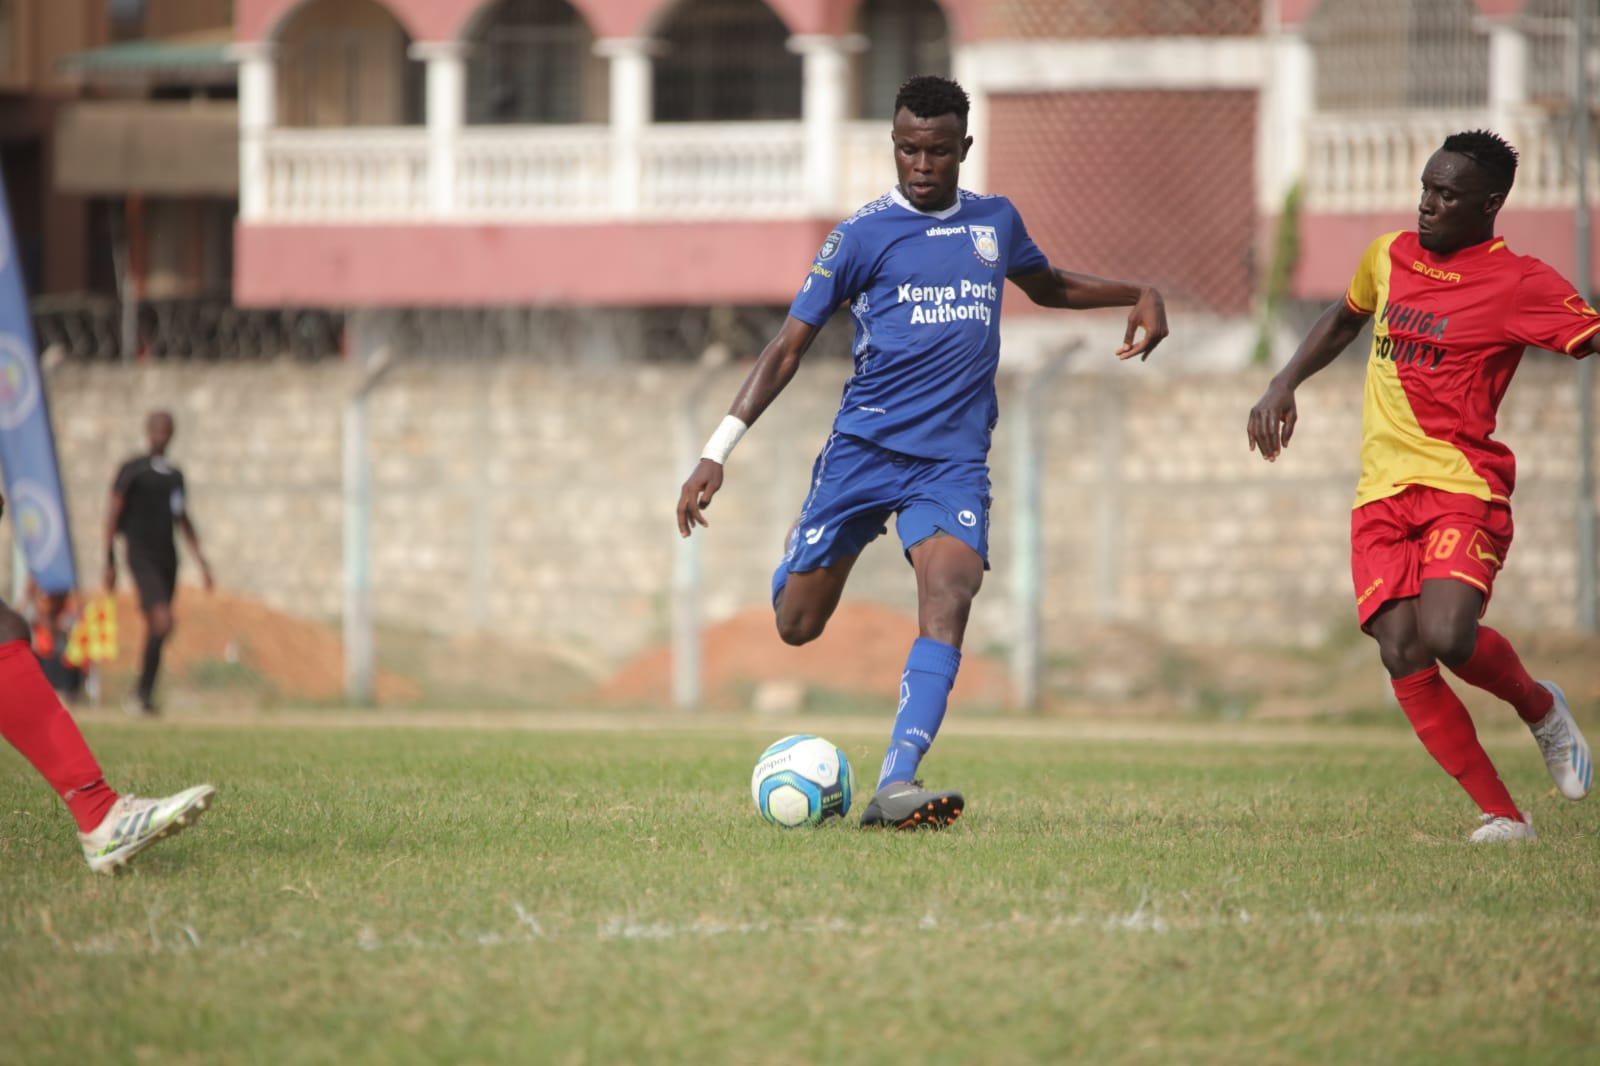 Two fixtures lined up on Friday as FKFPL heads into match day 15